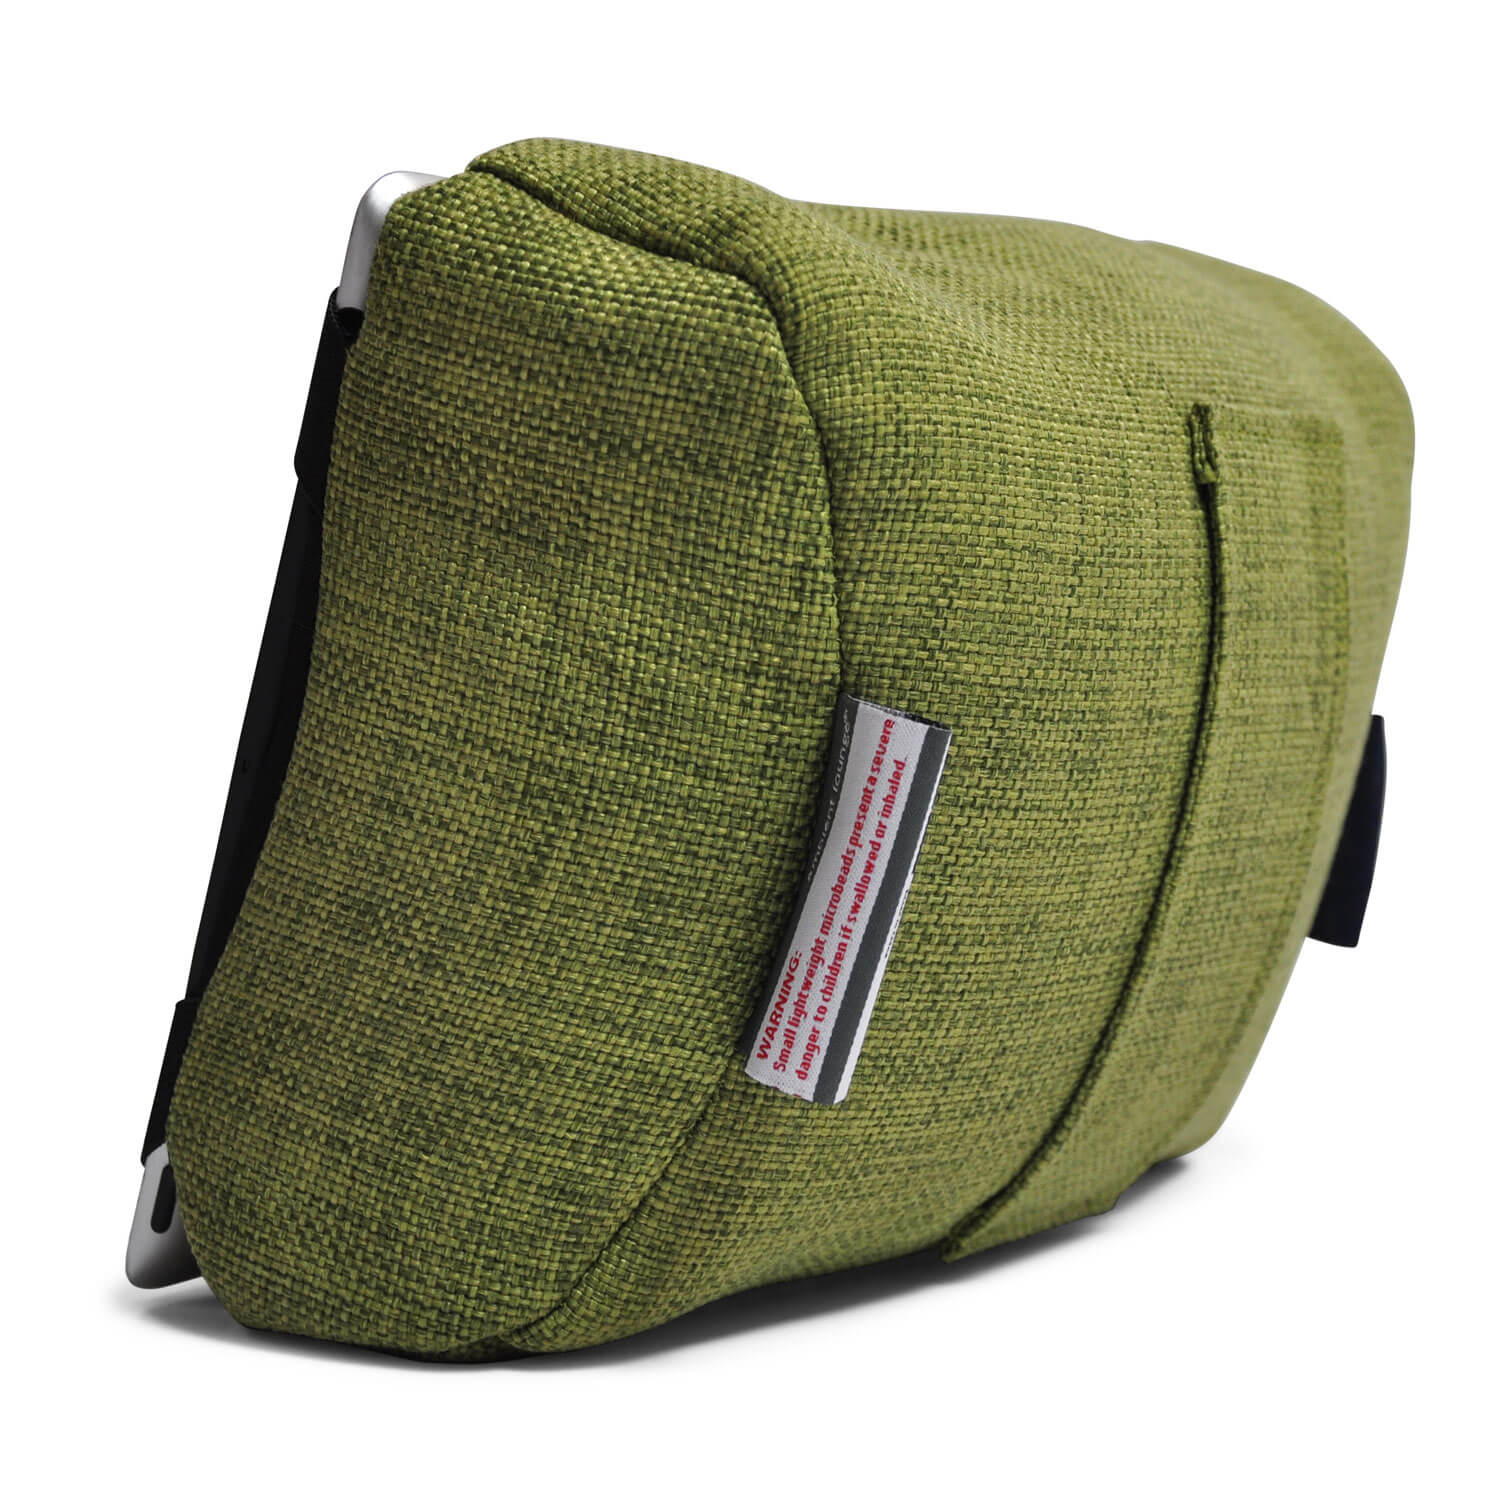 Tech Pillow Green Ipad Rest And Head Cushion For Travel